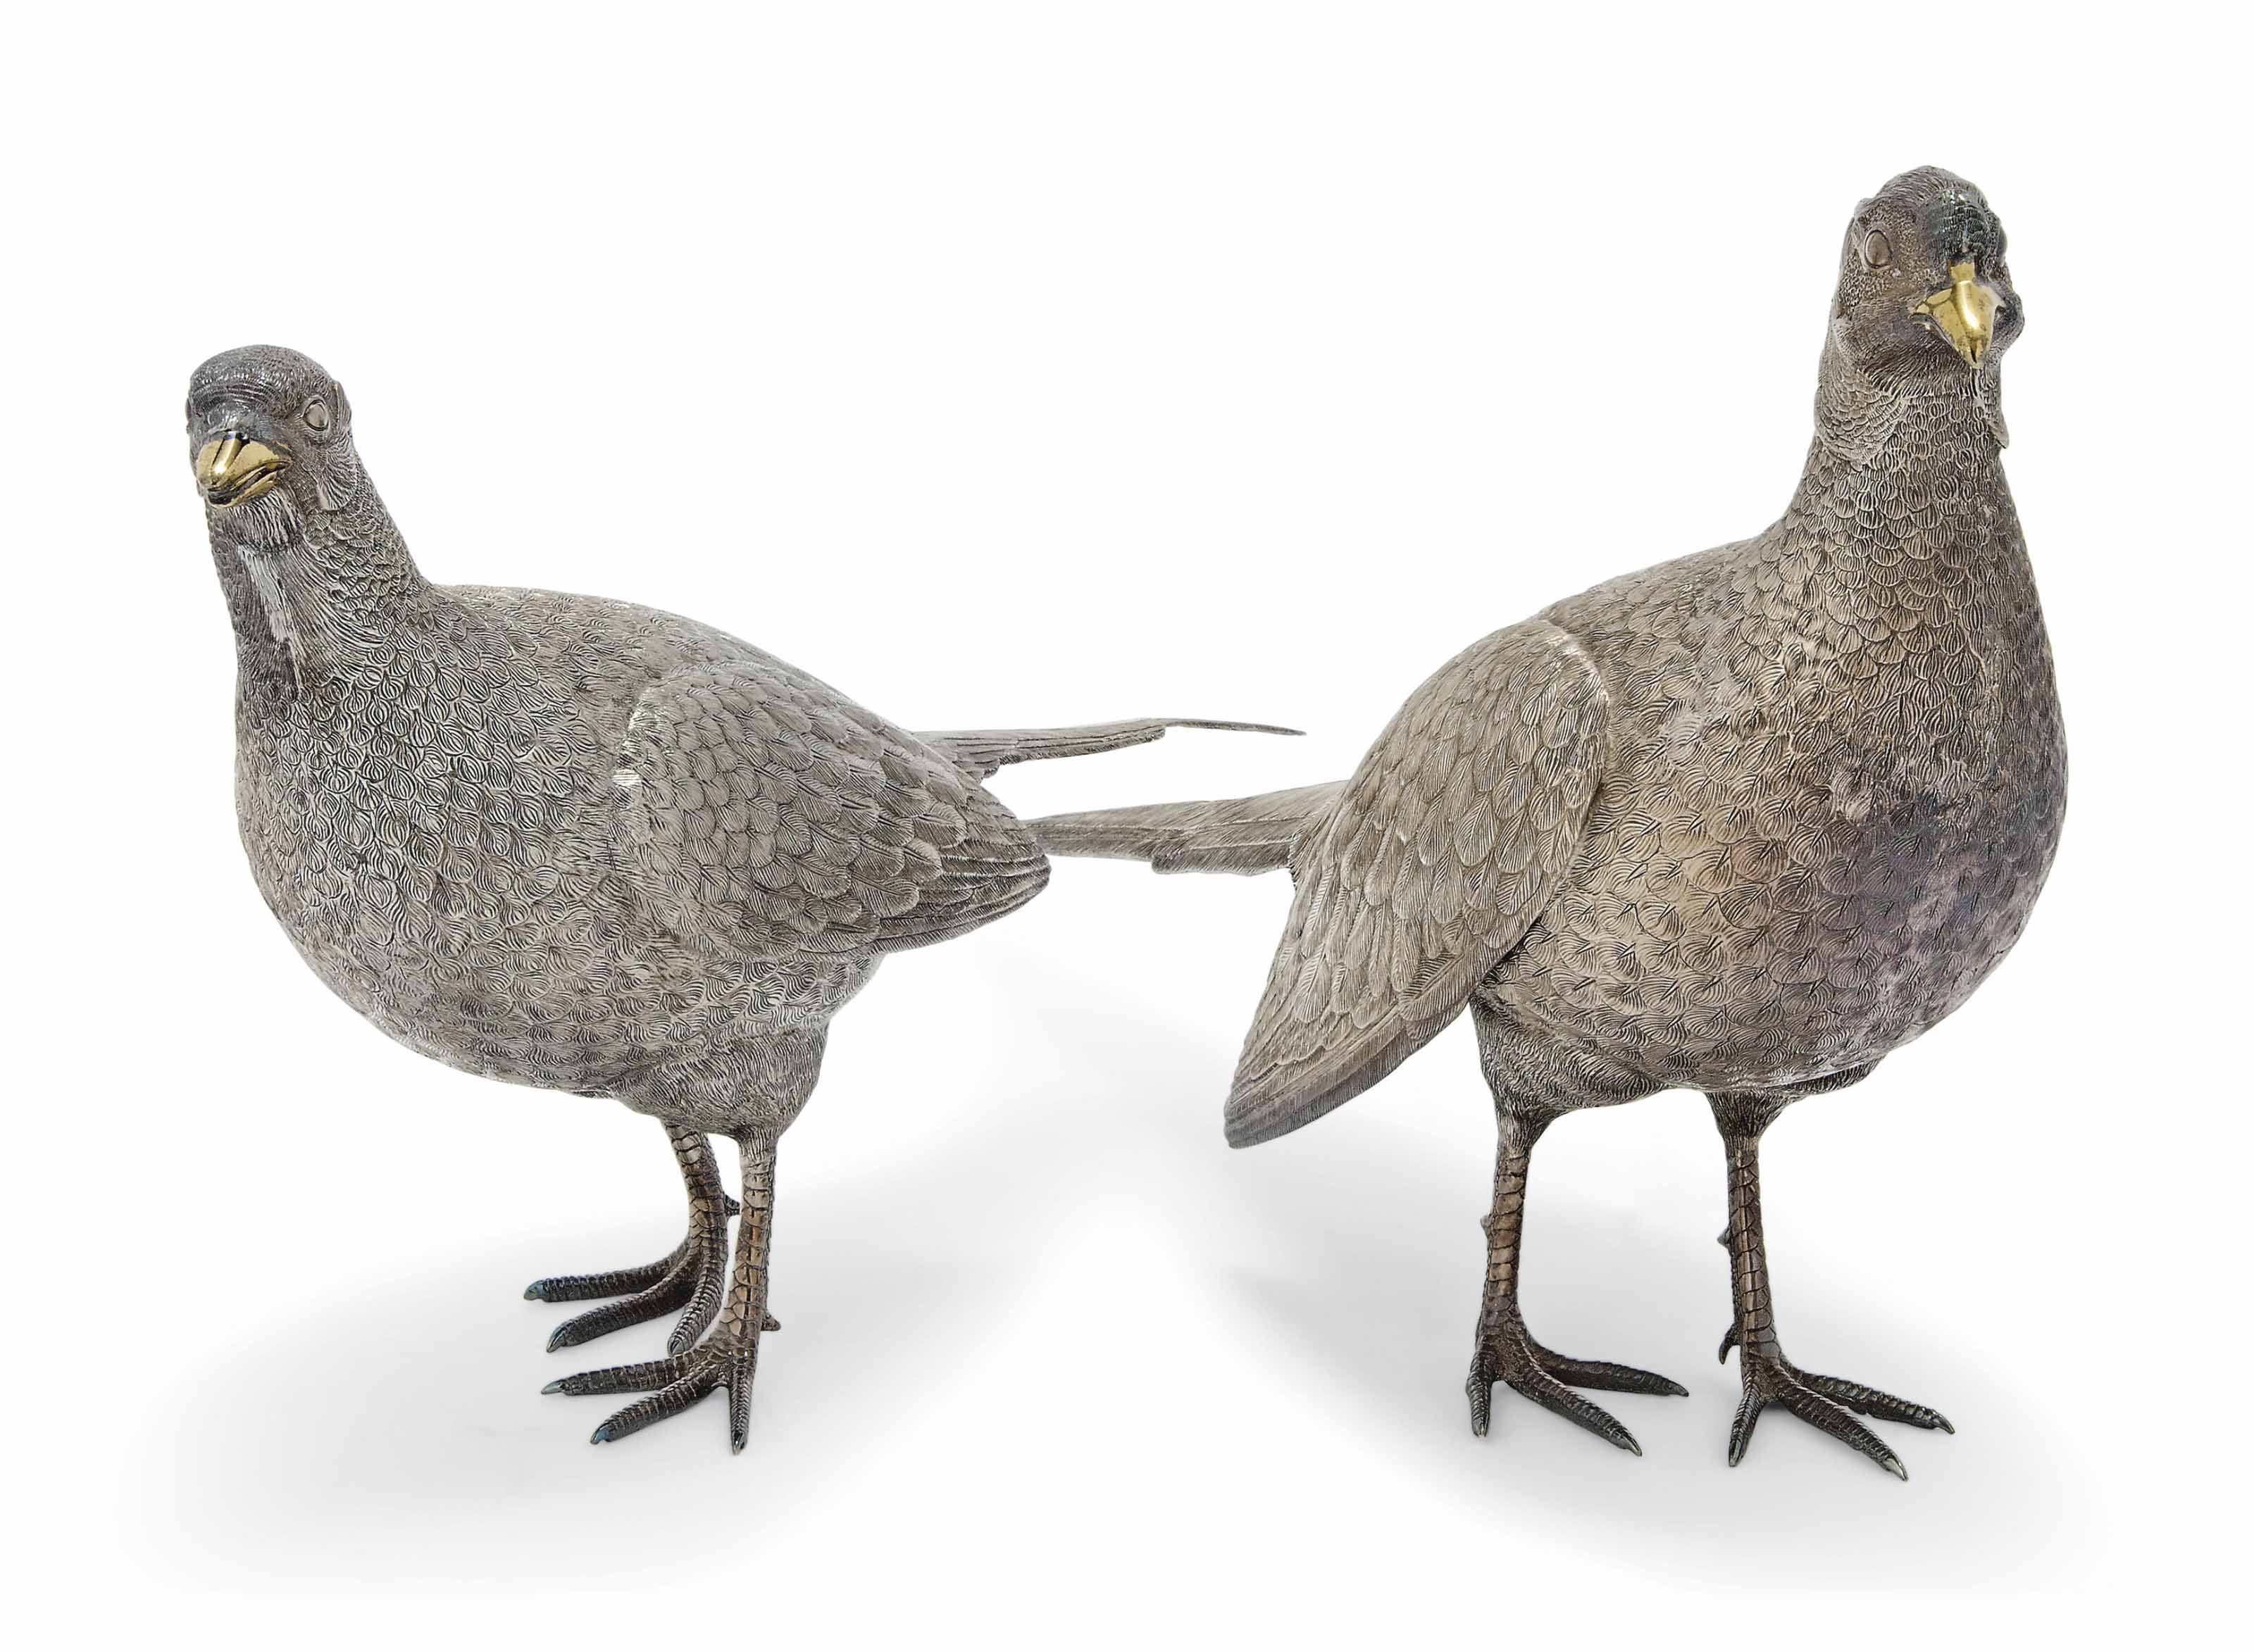 A PAIR OF LARGE MODERN SILVER PHEASANT TABLE ORNAMENTS